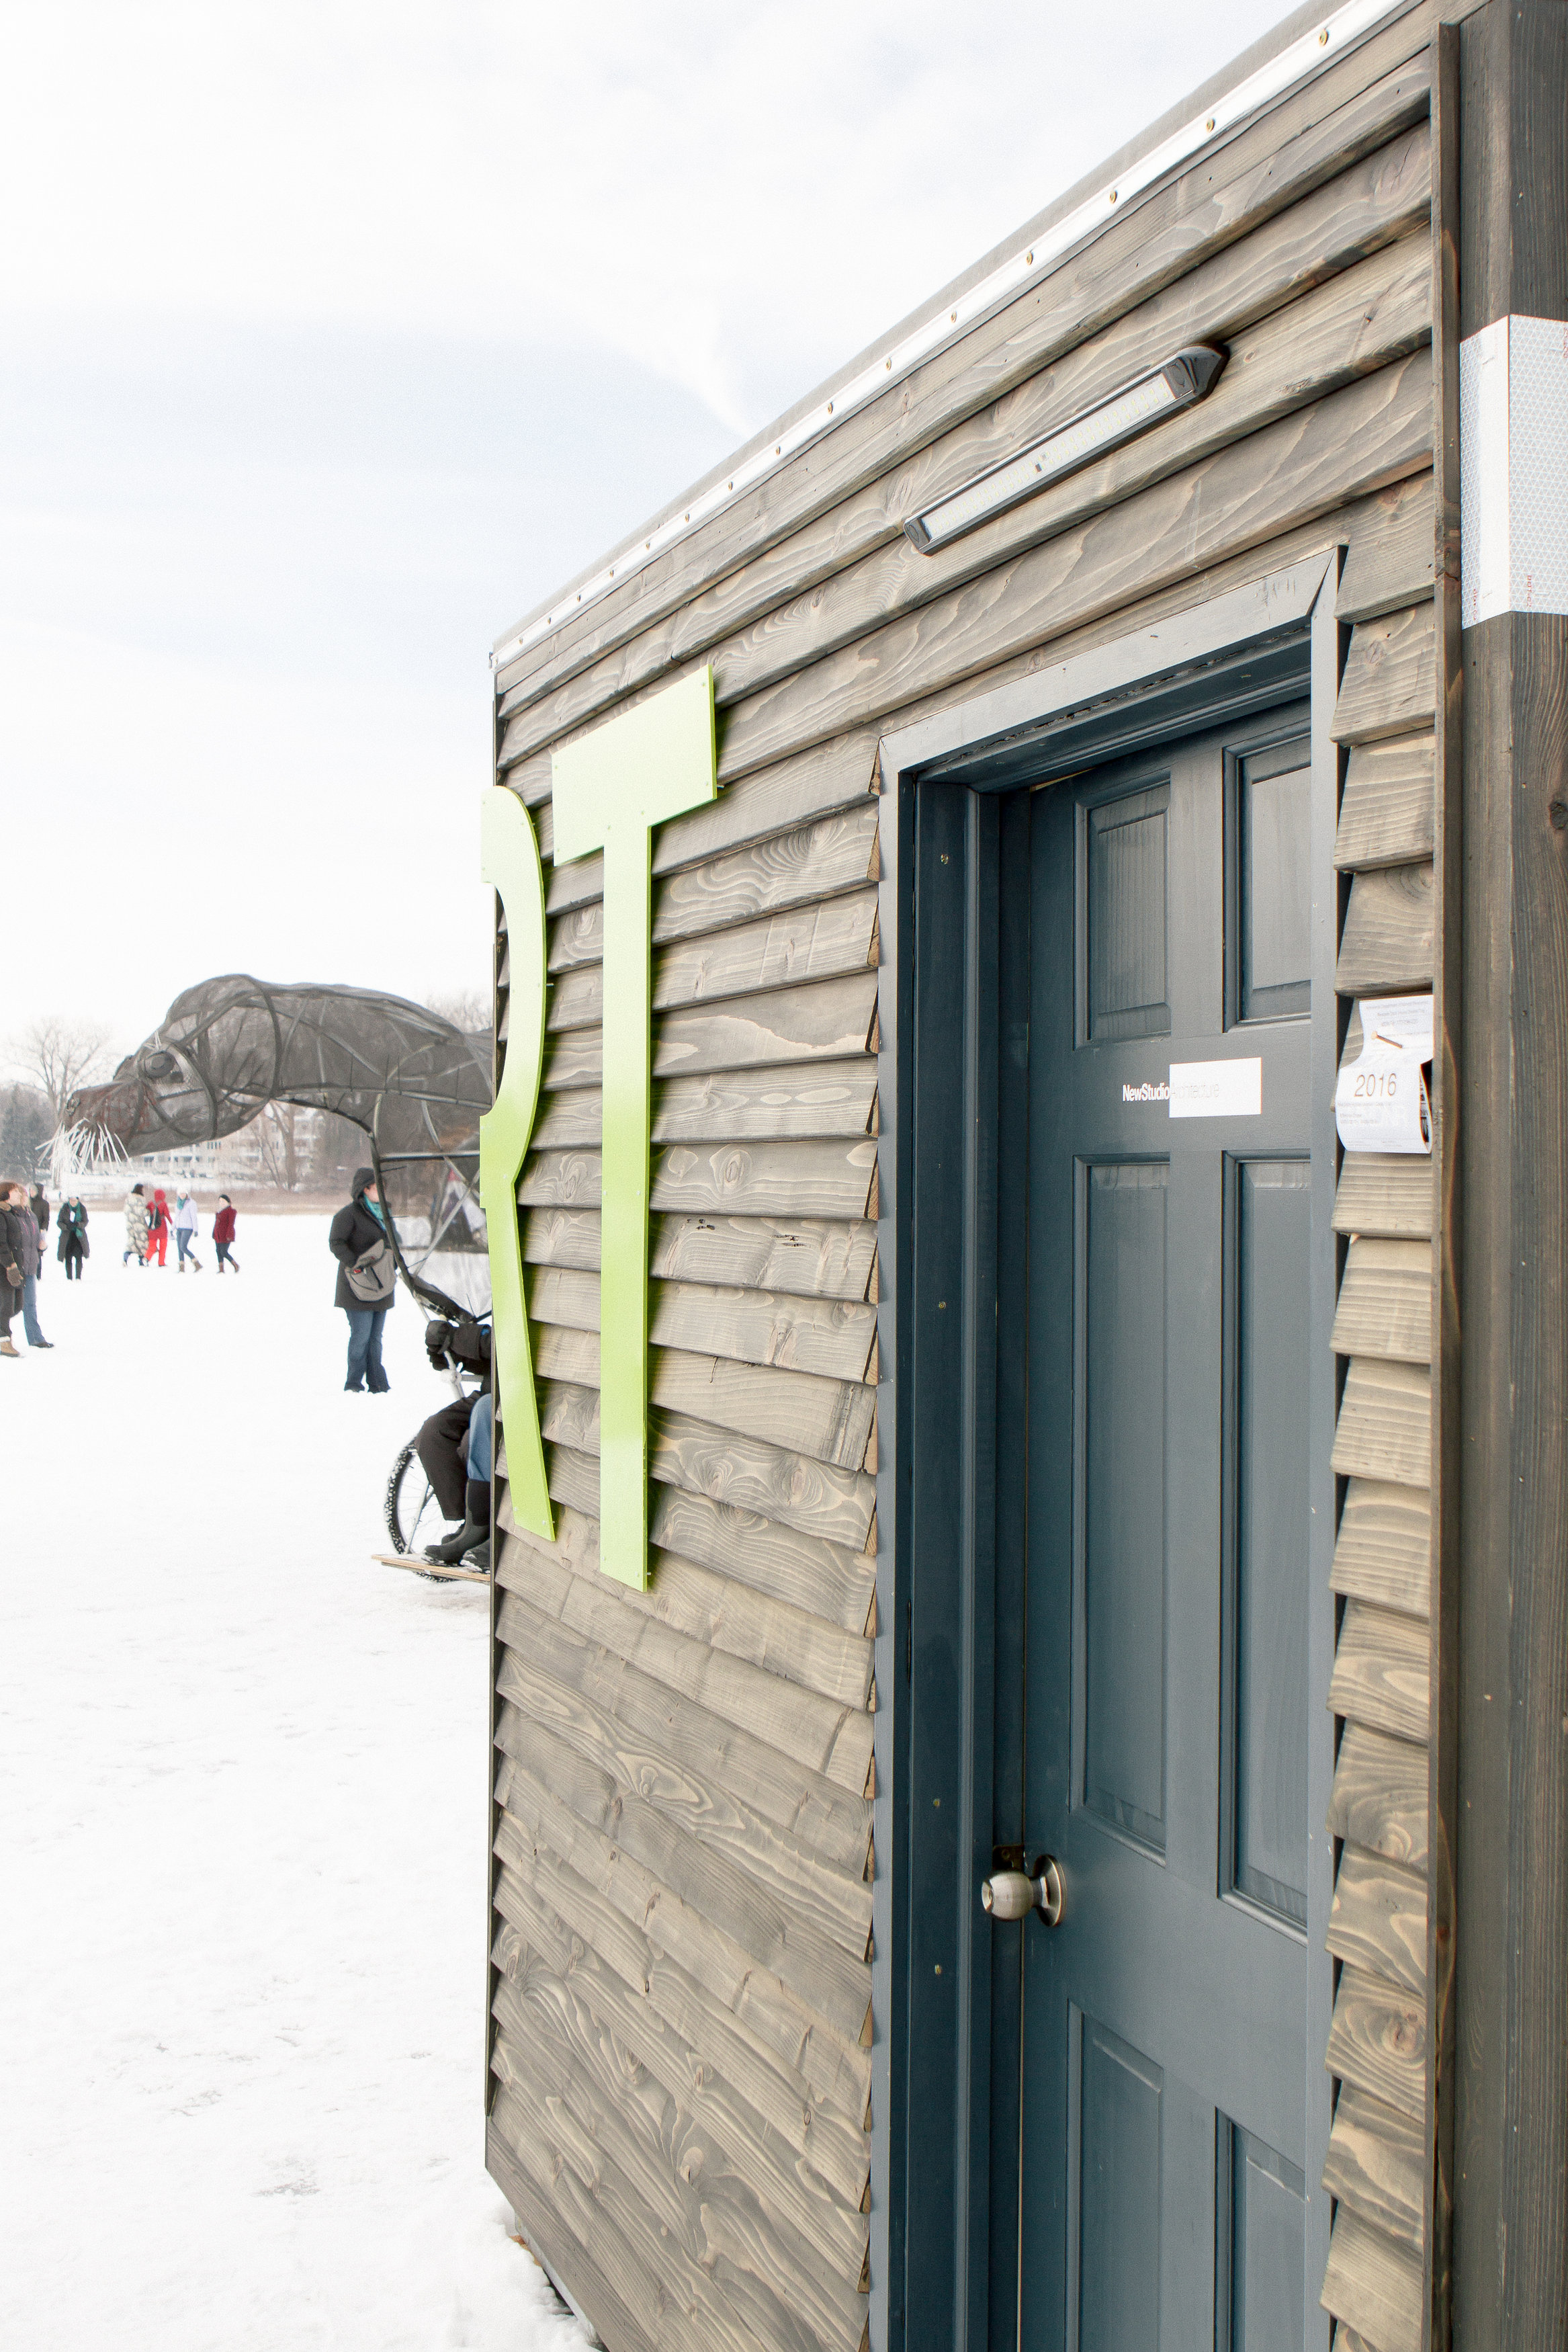 Exterior view of the art shanty designed by NewStudio Architecture